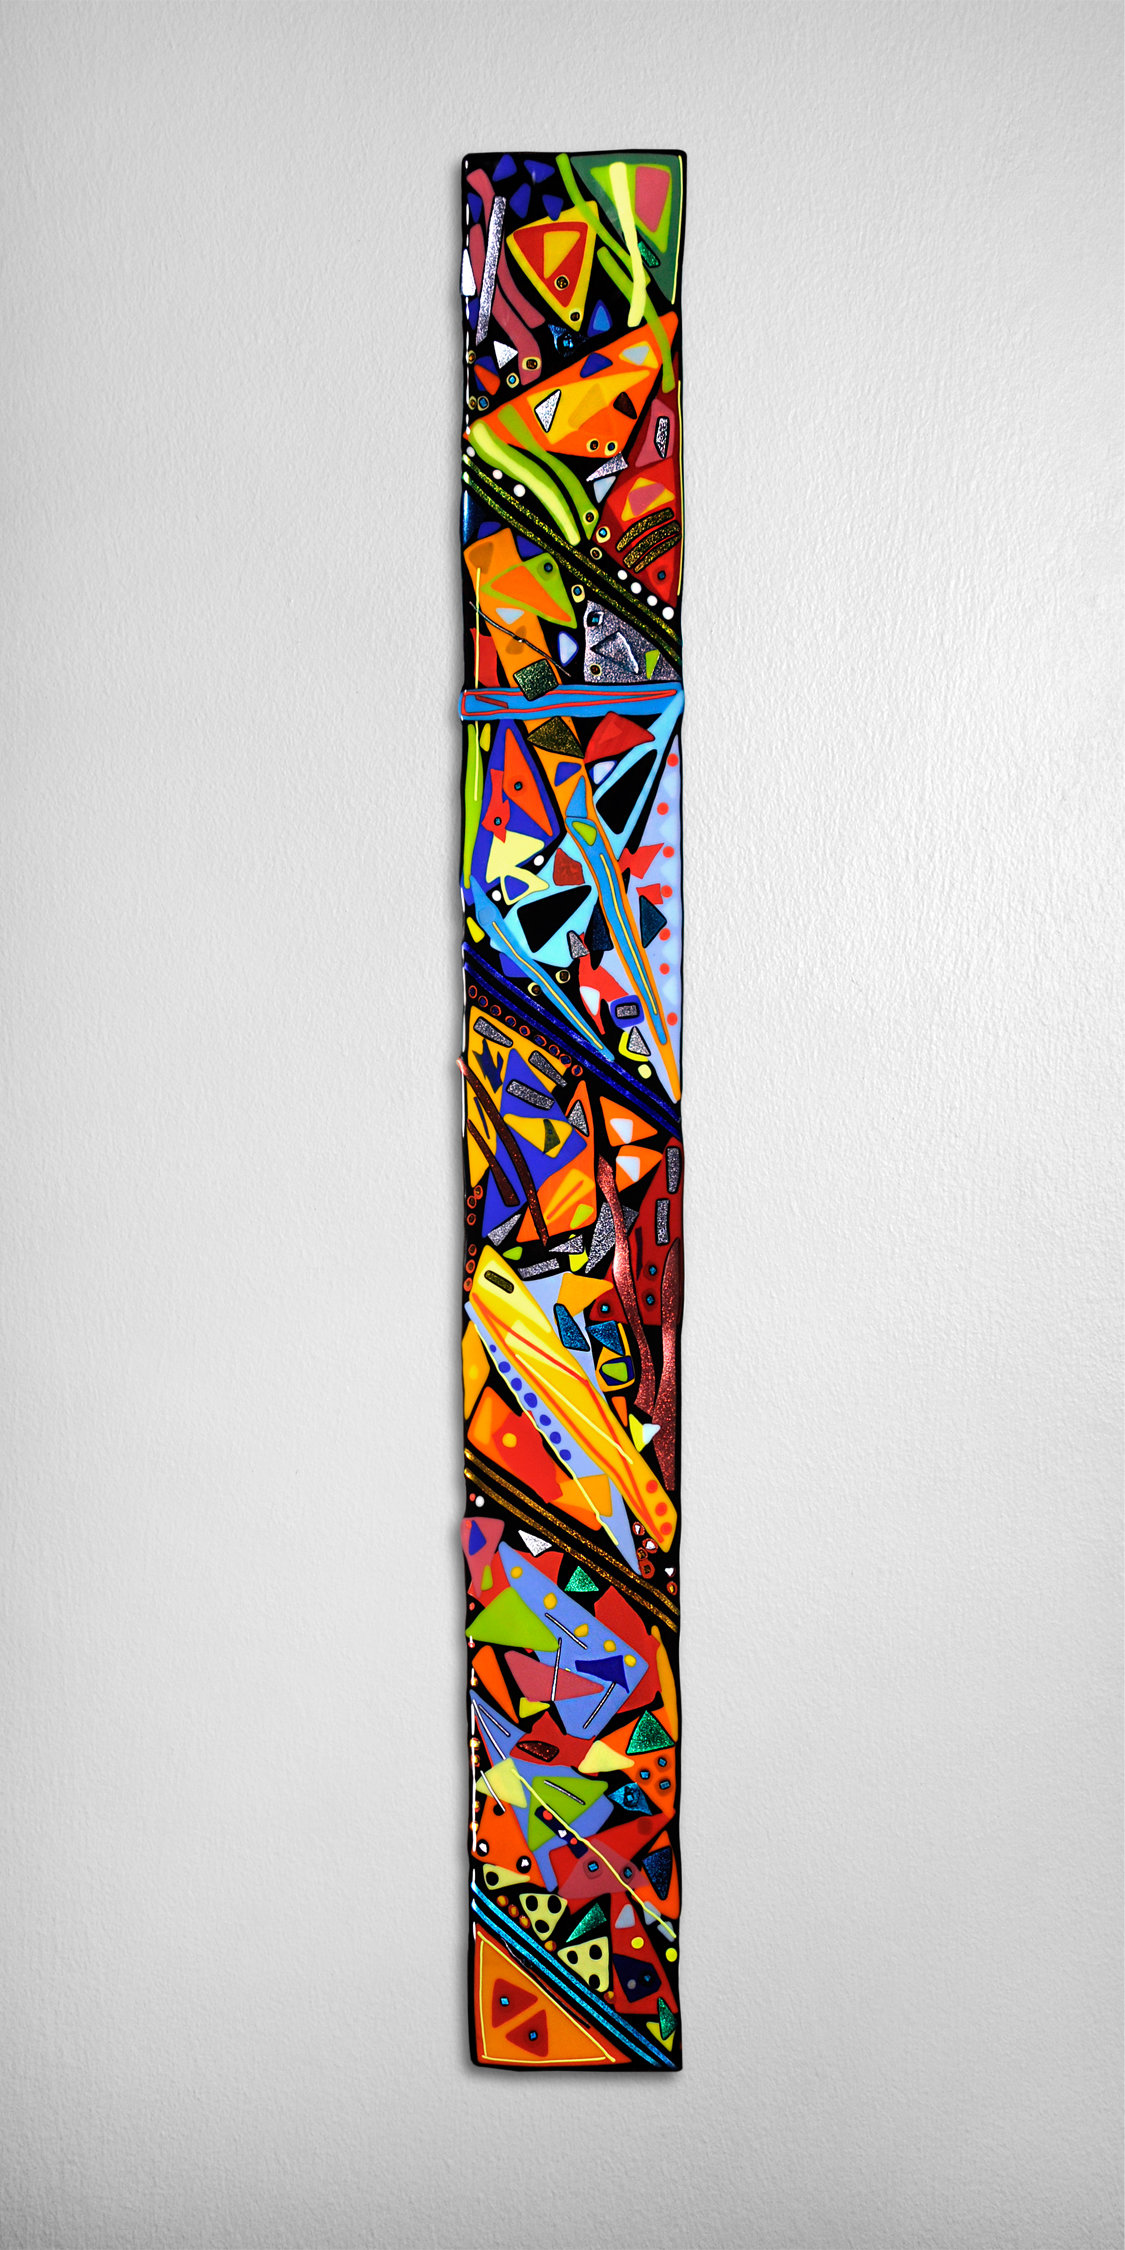 Colored Glass Wall Decor : Mardi gras wall panel by helen rudy art glass